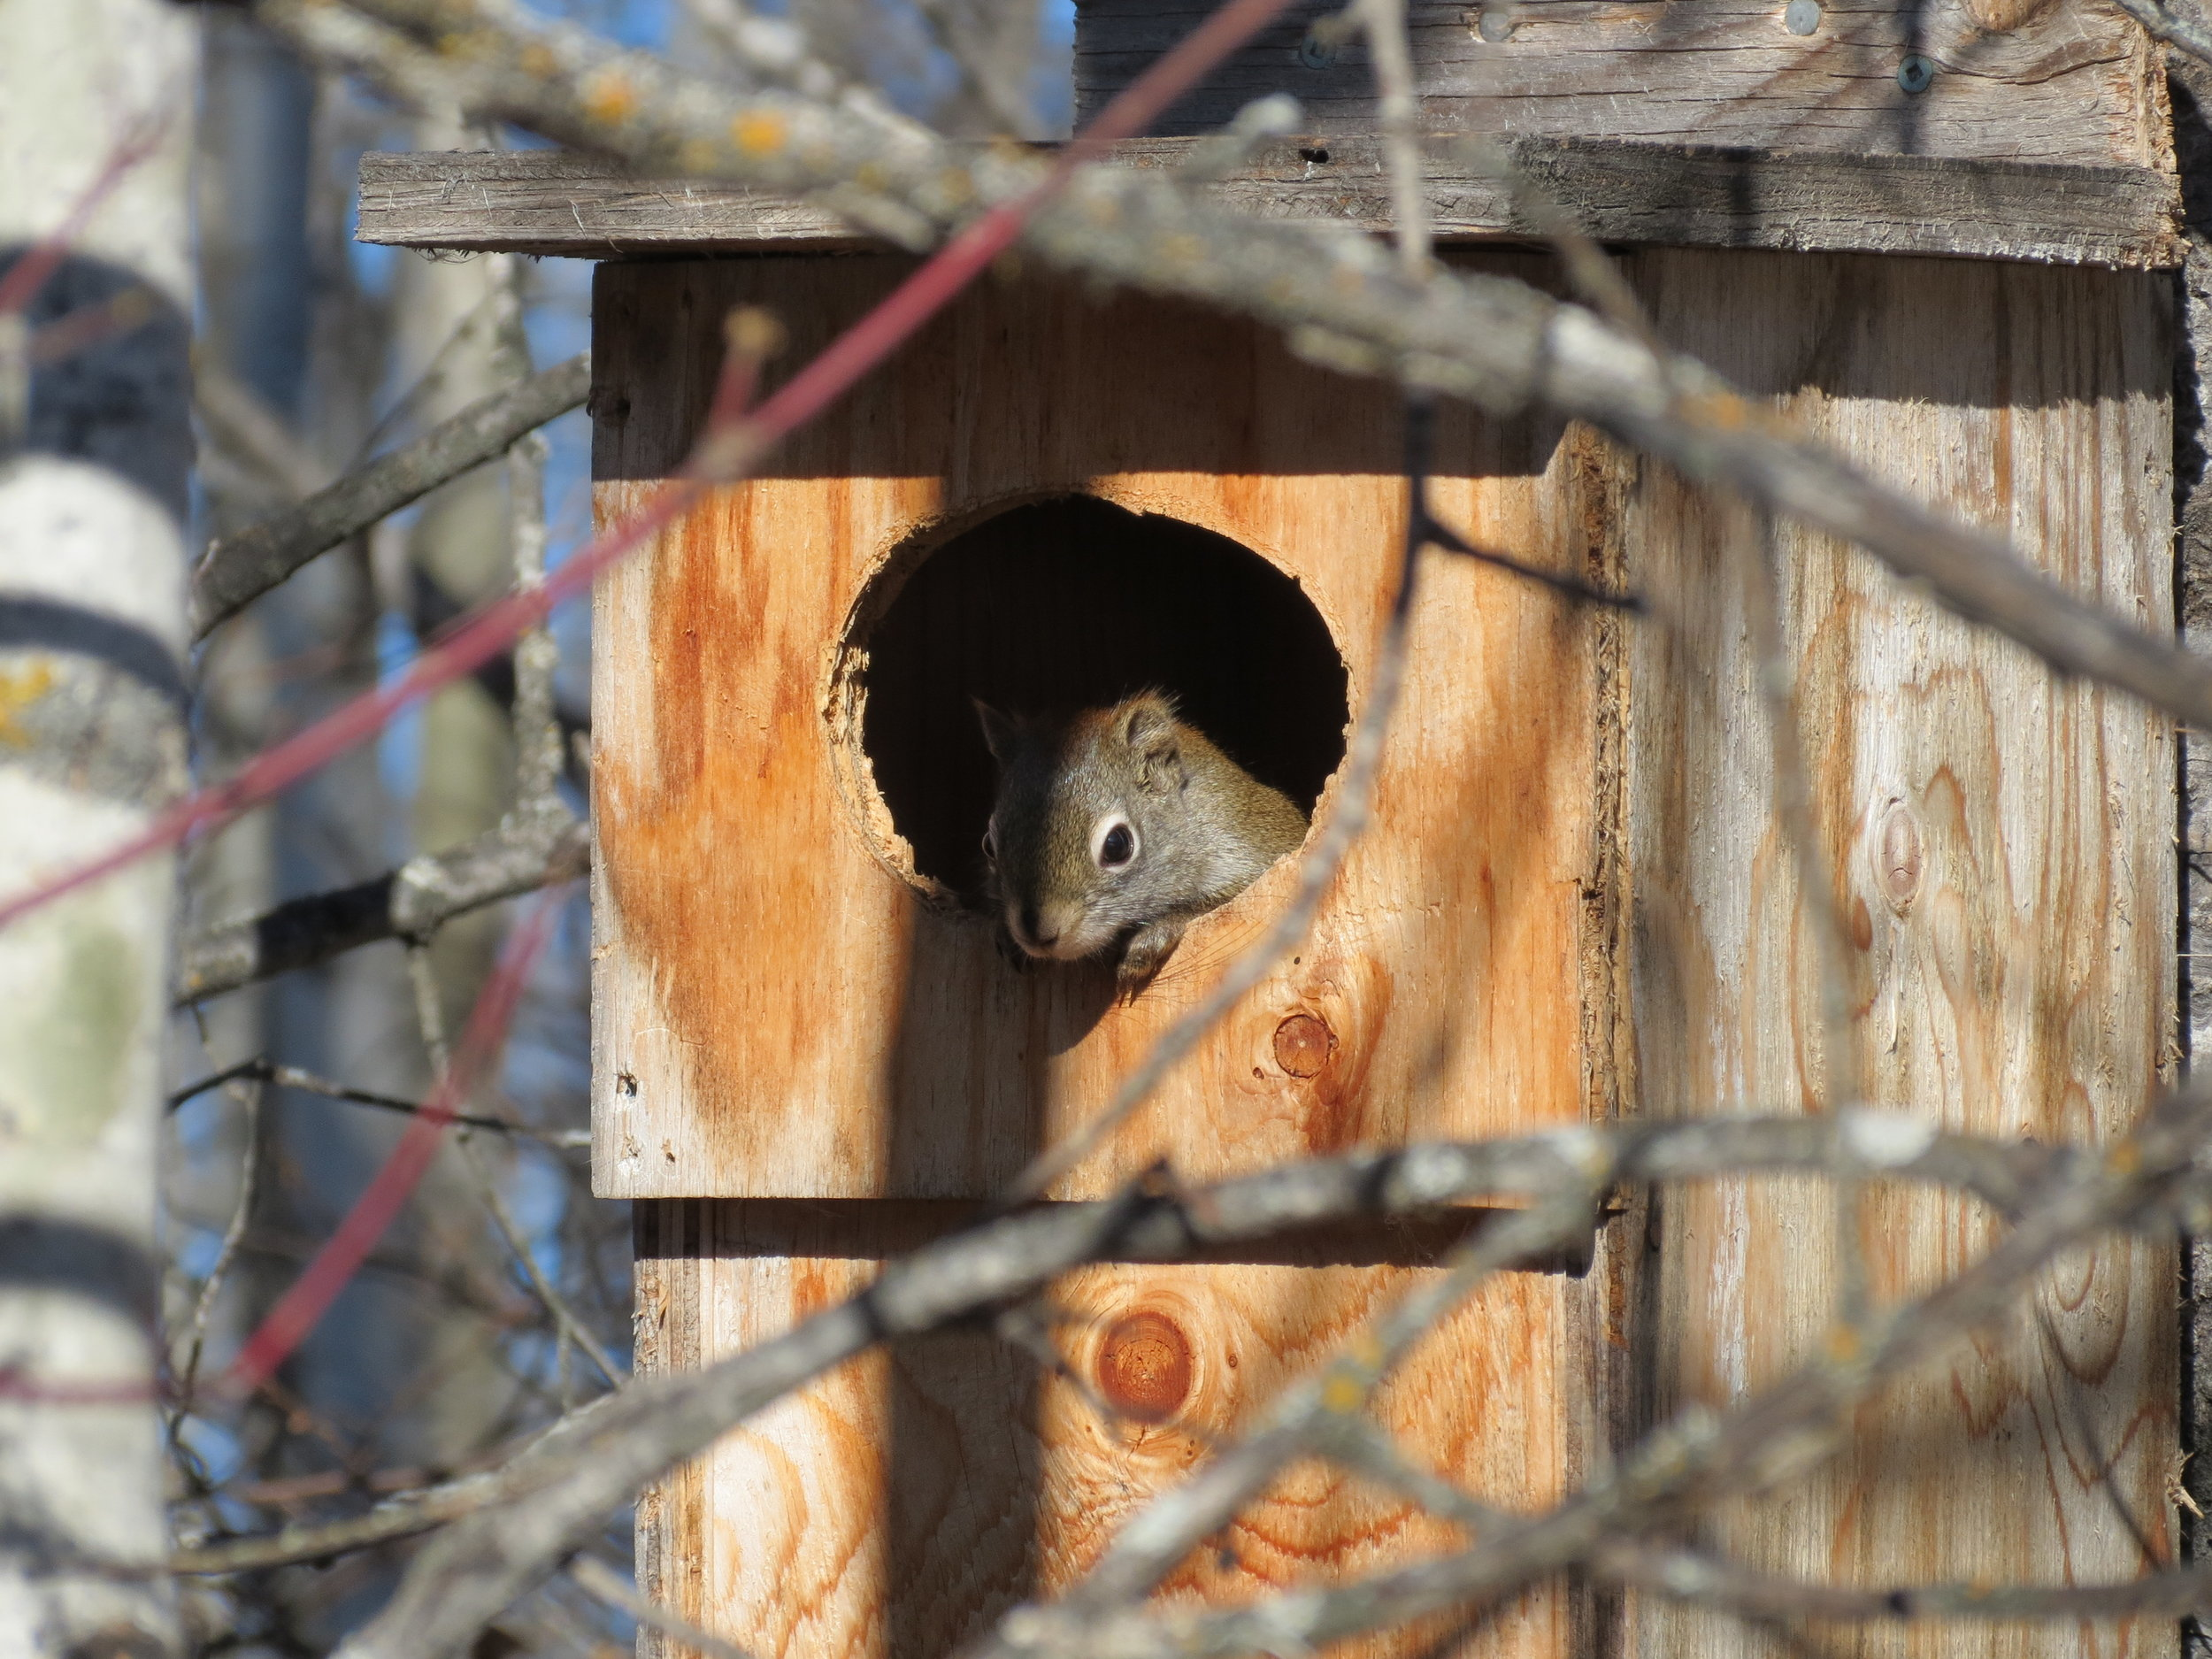 Red Squirrel residents in a waterfowl box. No need to clean this one out!